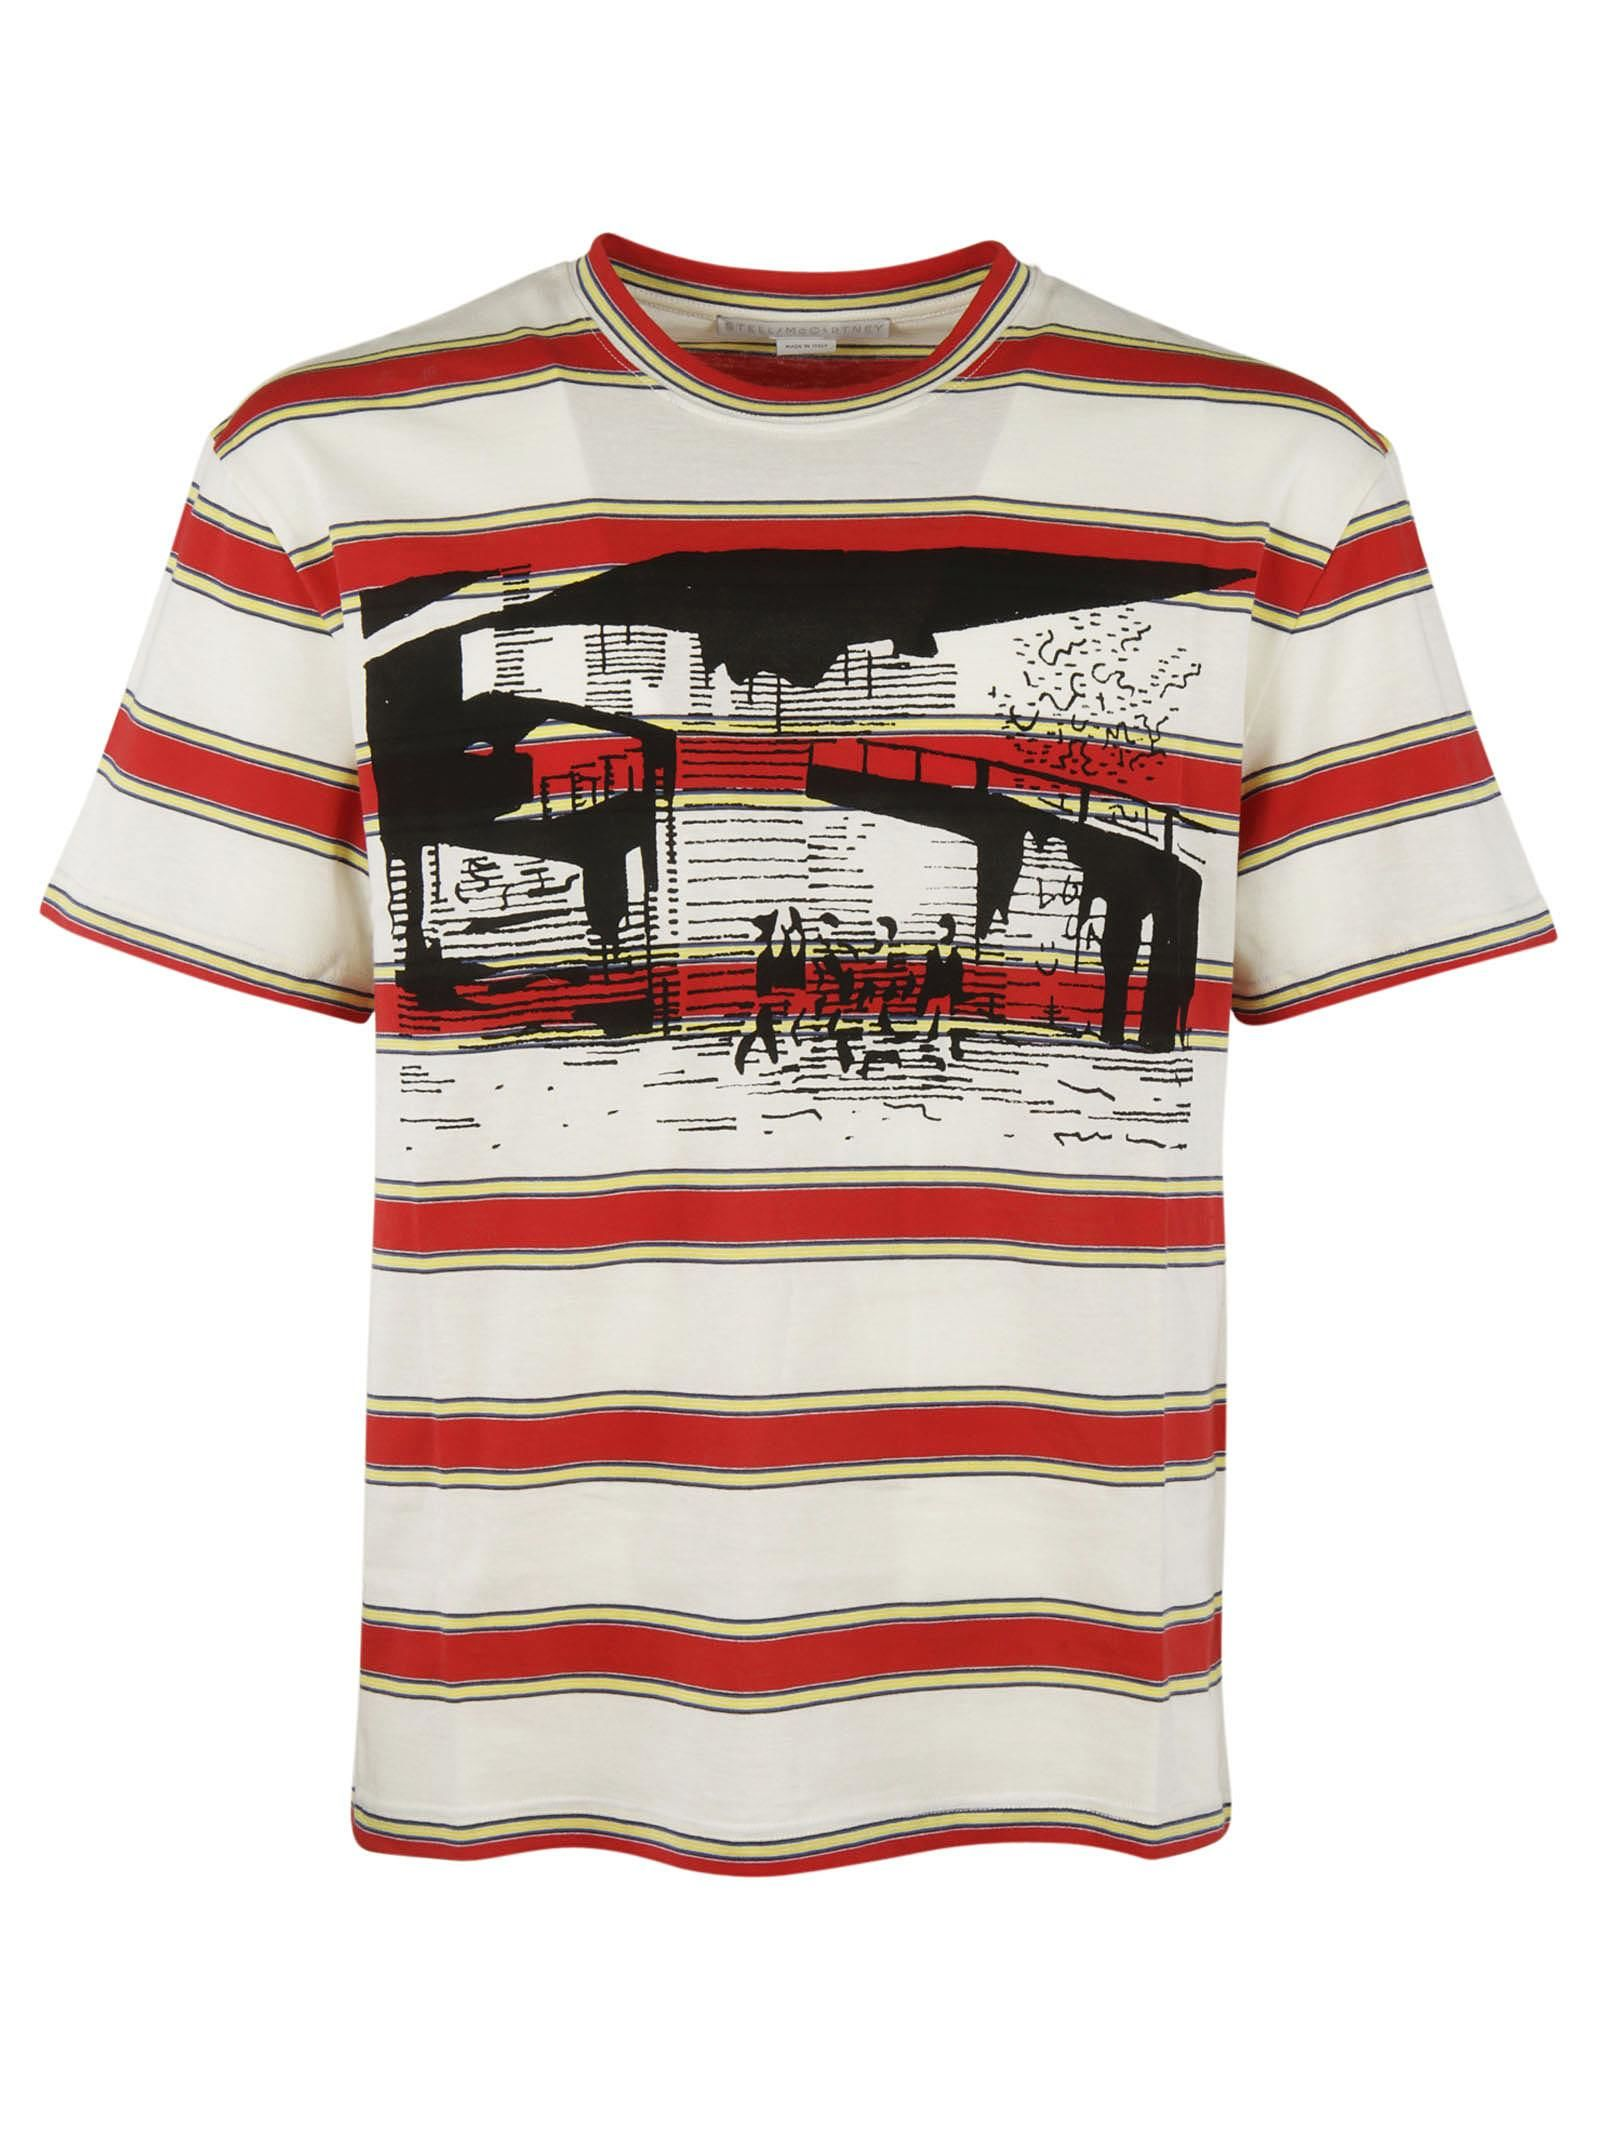 STELLA MCCARTNEY MEN'S STRIPED PRINTED T-SHIRT IN RED AND WHITE, MULTICOLOR